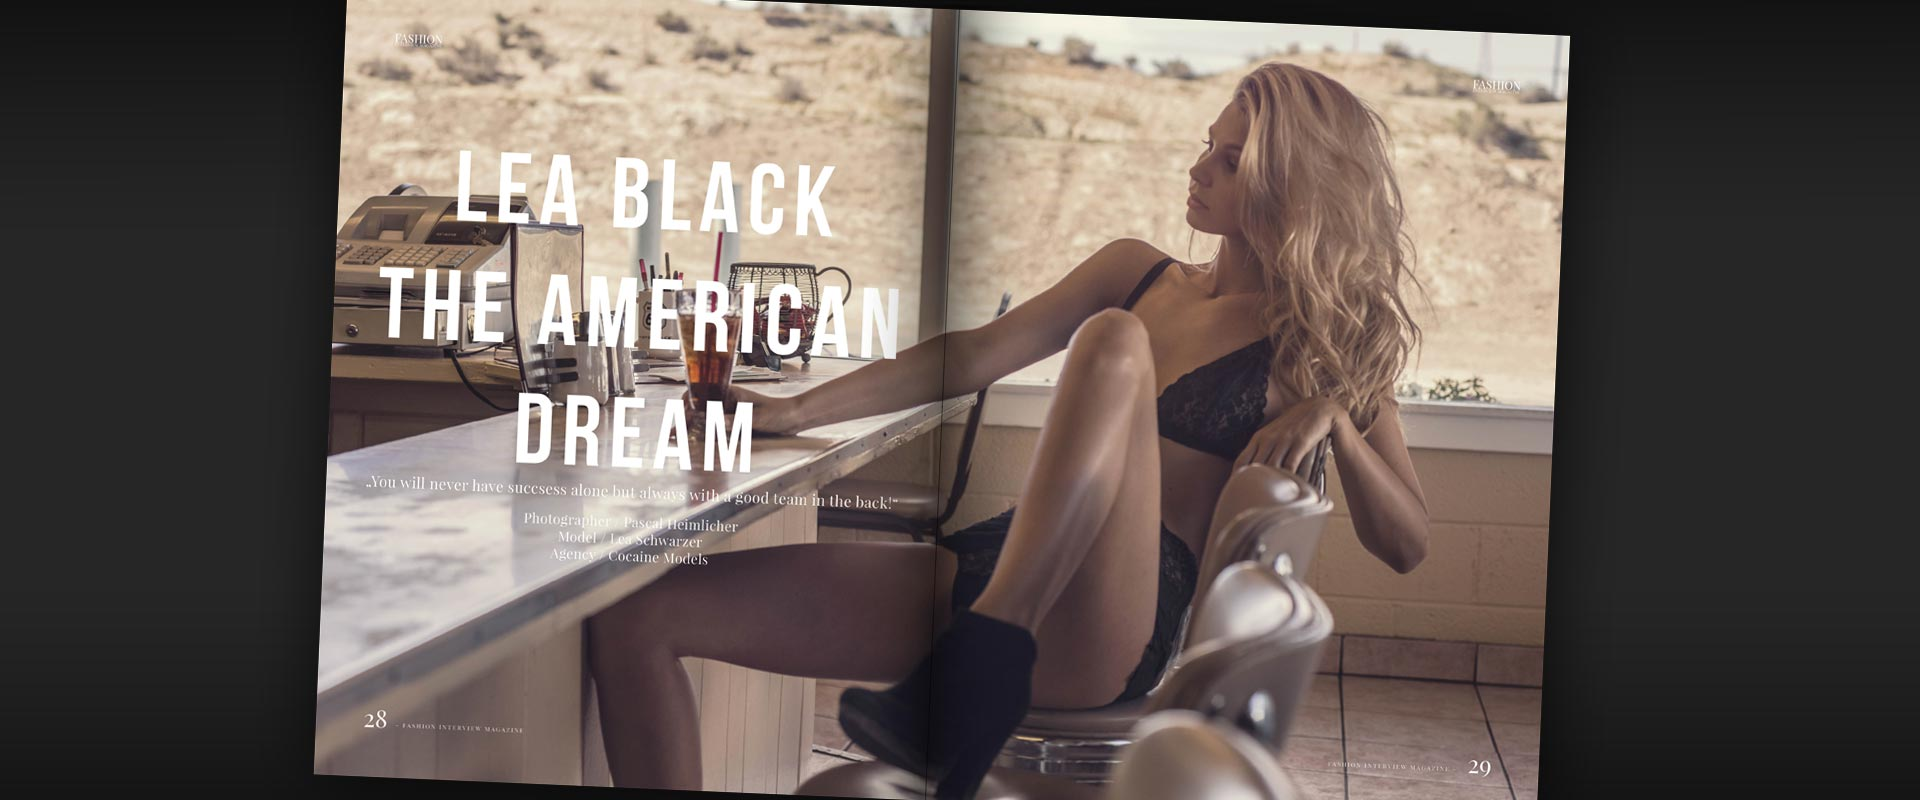 Lea Black & Pascal Heimlicher life the American Dream in California